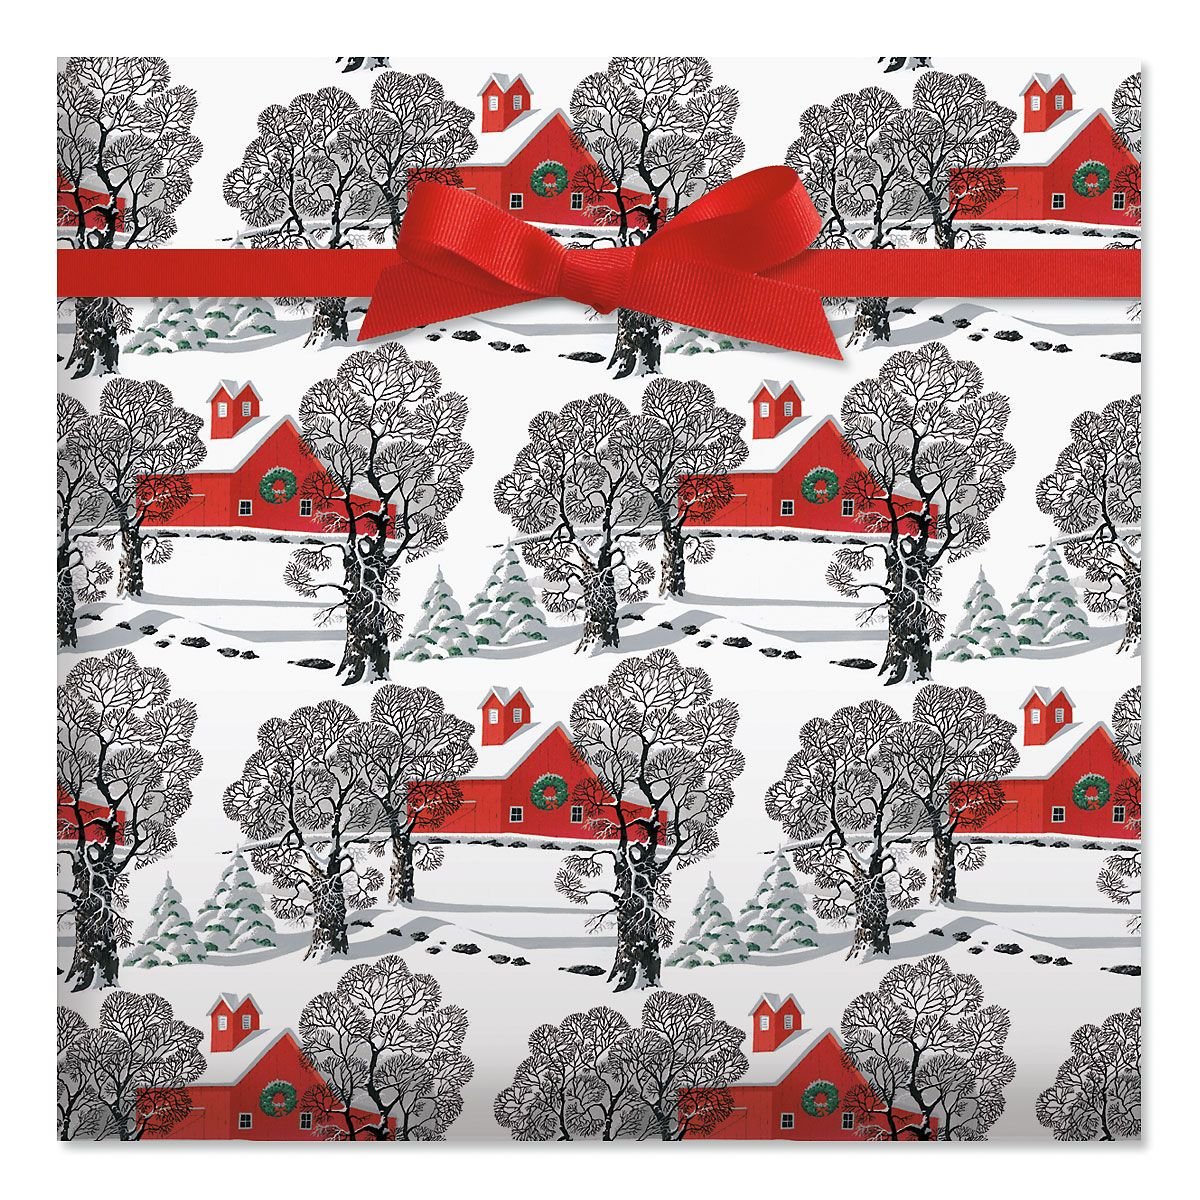 Country Christmas Jumbo Rolled Gift Wrap